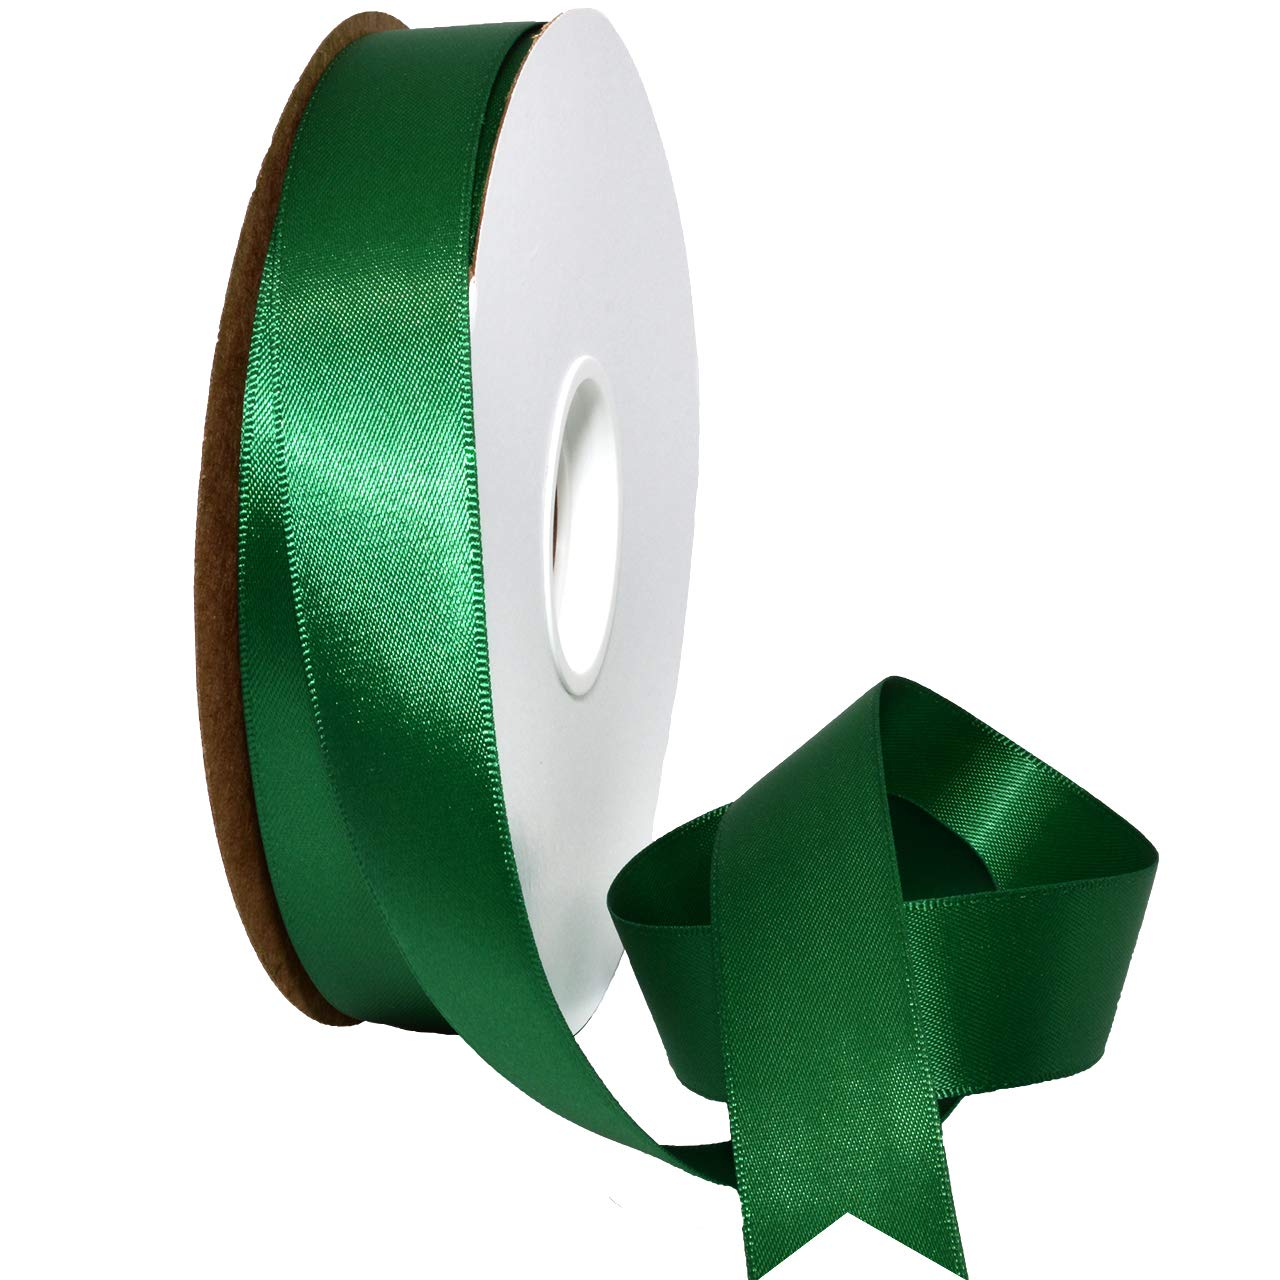 Morex Ribbon Double Face Satin Ribbon, 7/8 Inch by 50 Yards, Forest Green